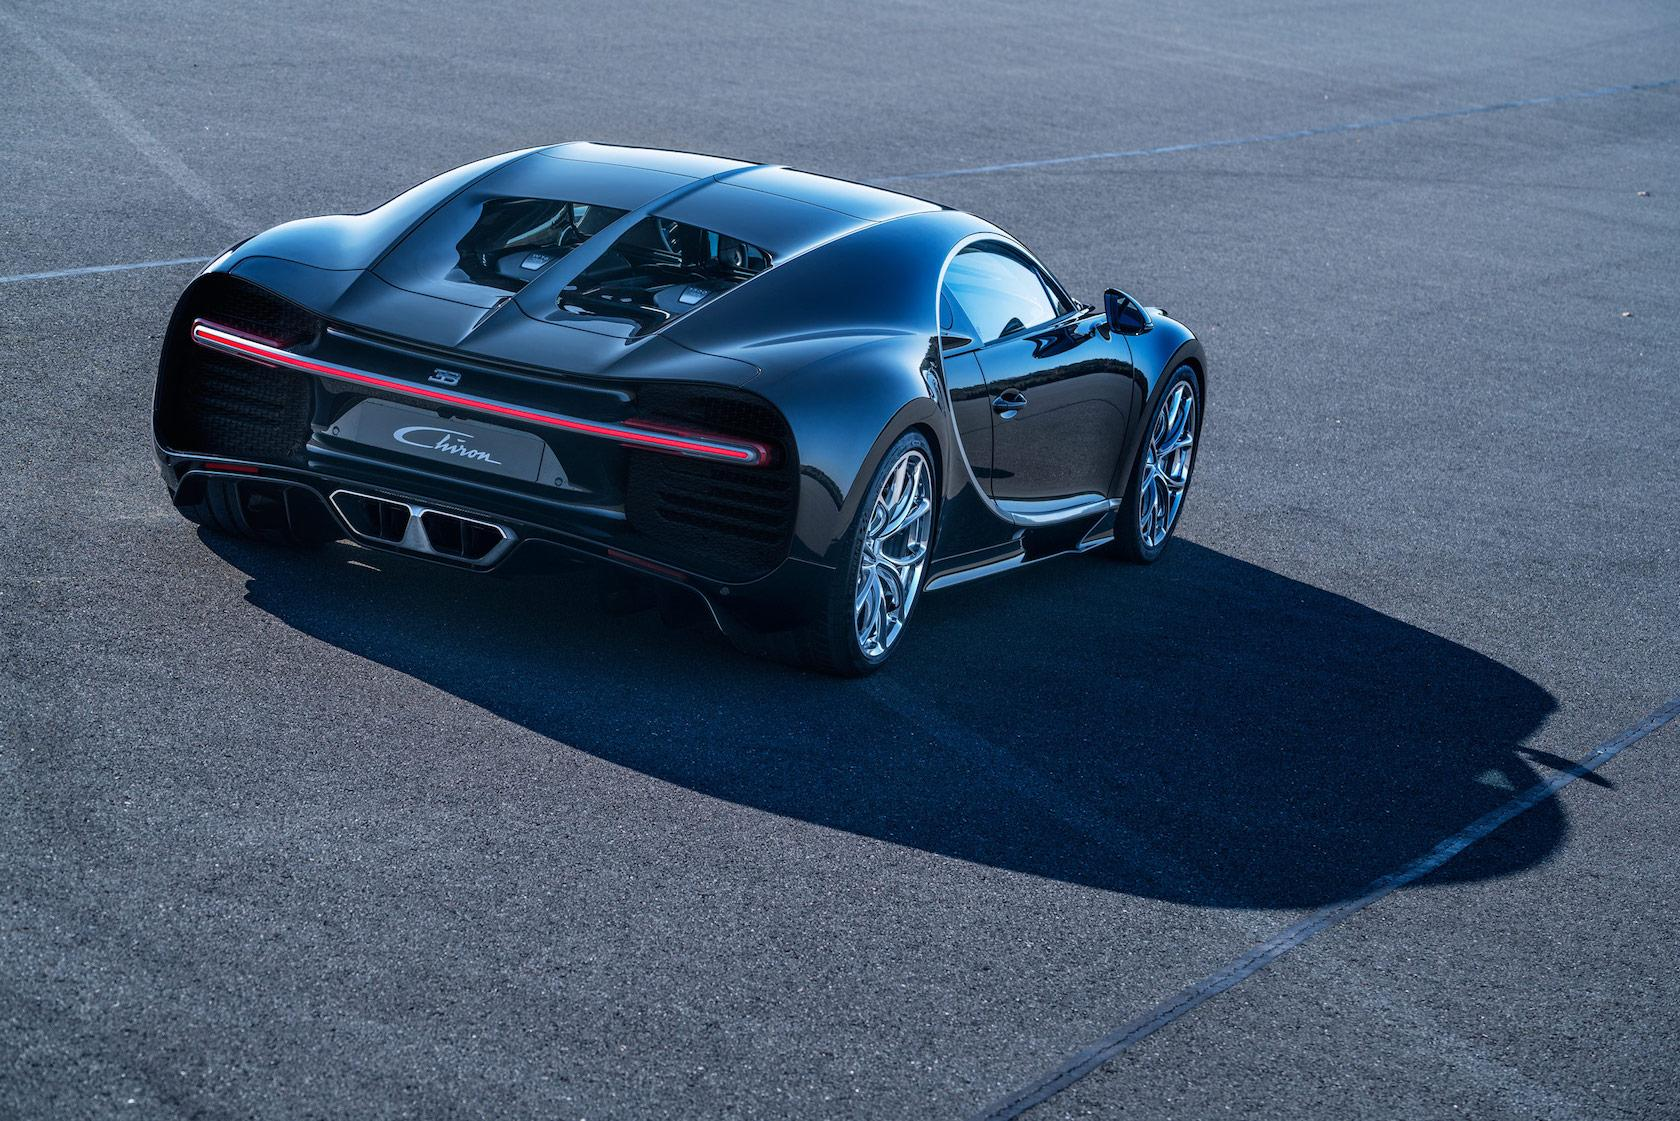 08_CHIRON_dynamic_34-rear_WEB